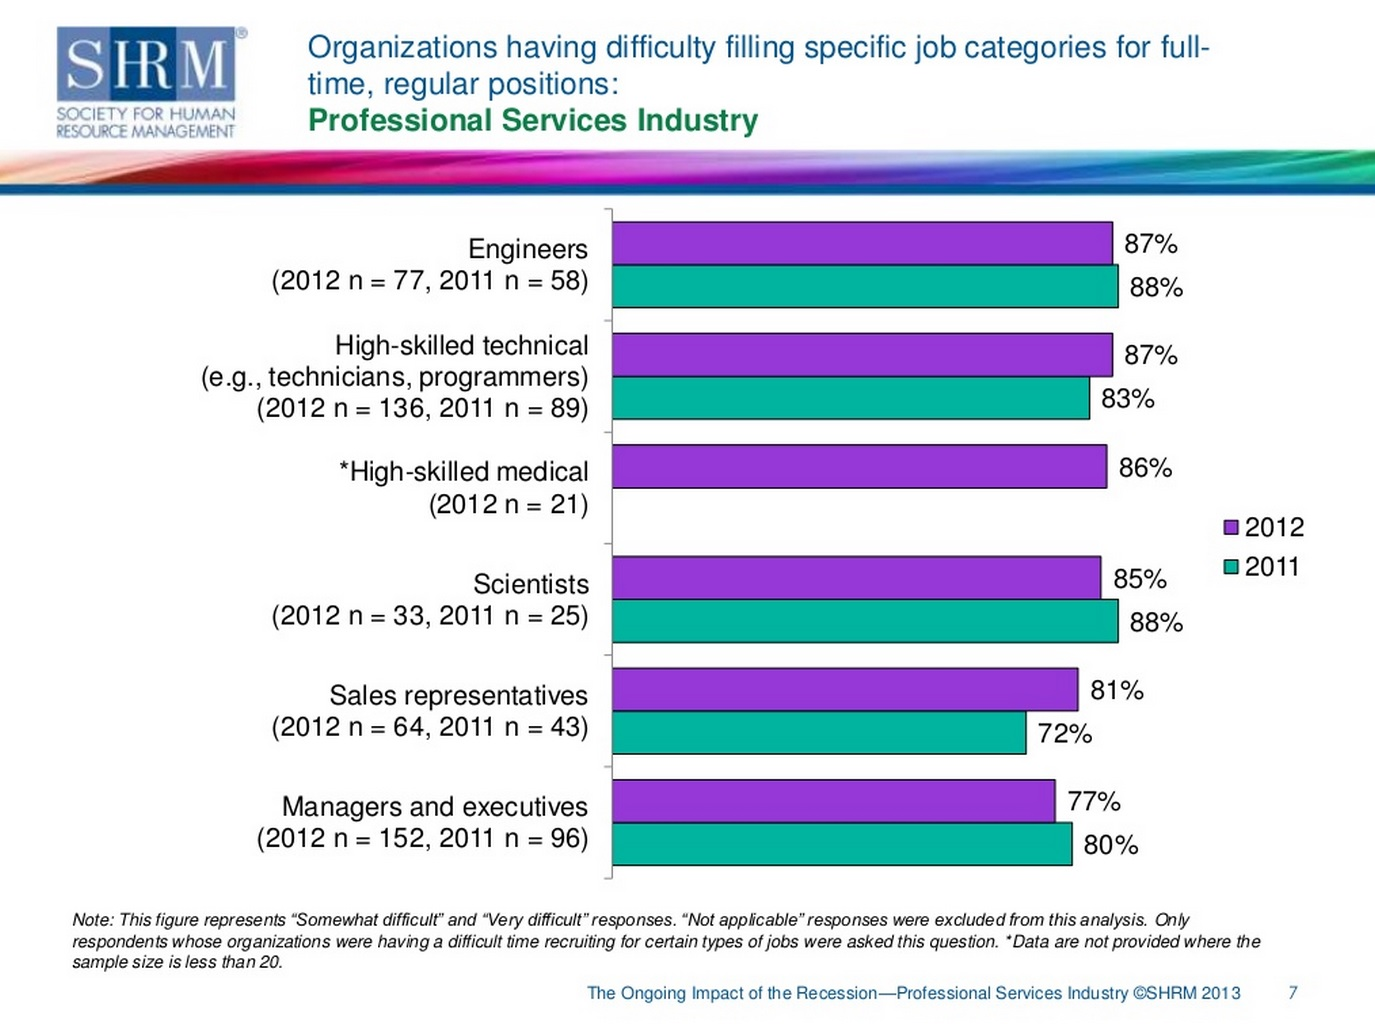 Where Did All the Resources Go?  Job Categories Hard to Fill